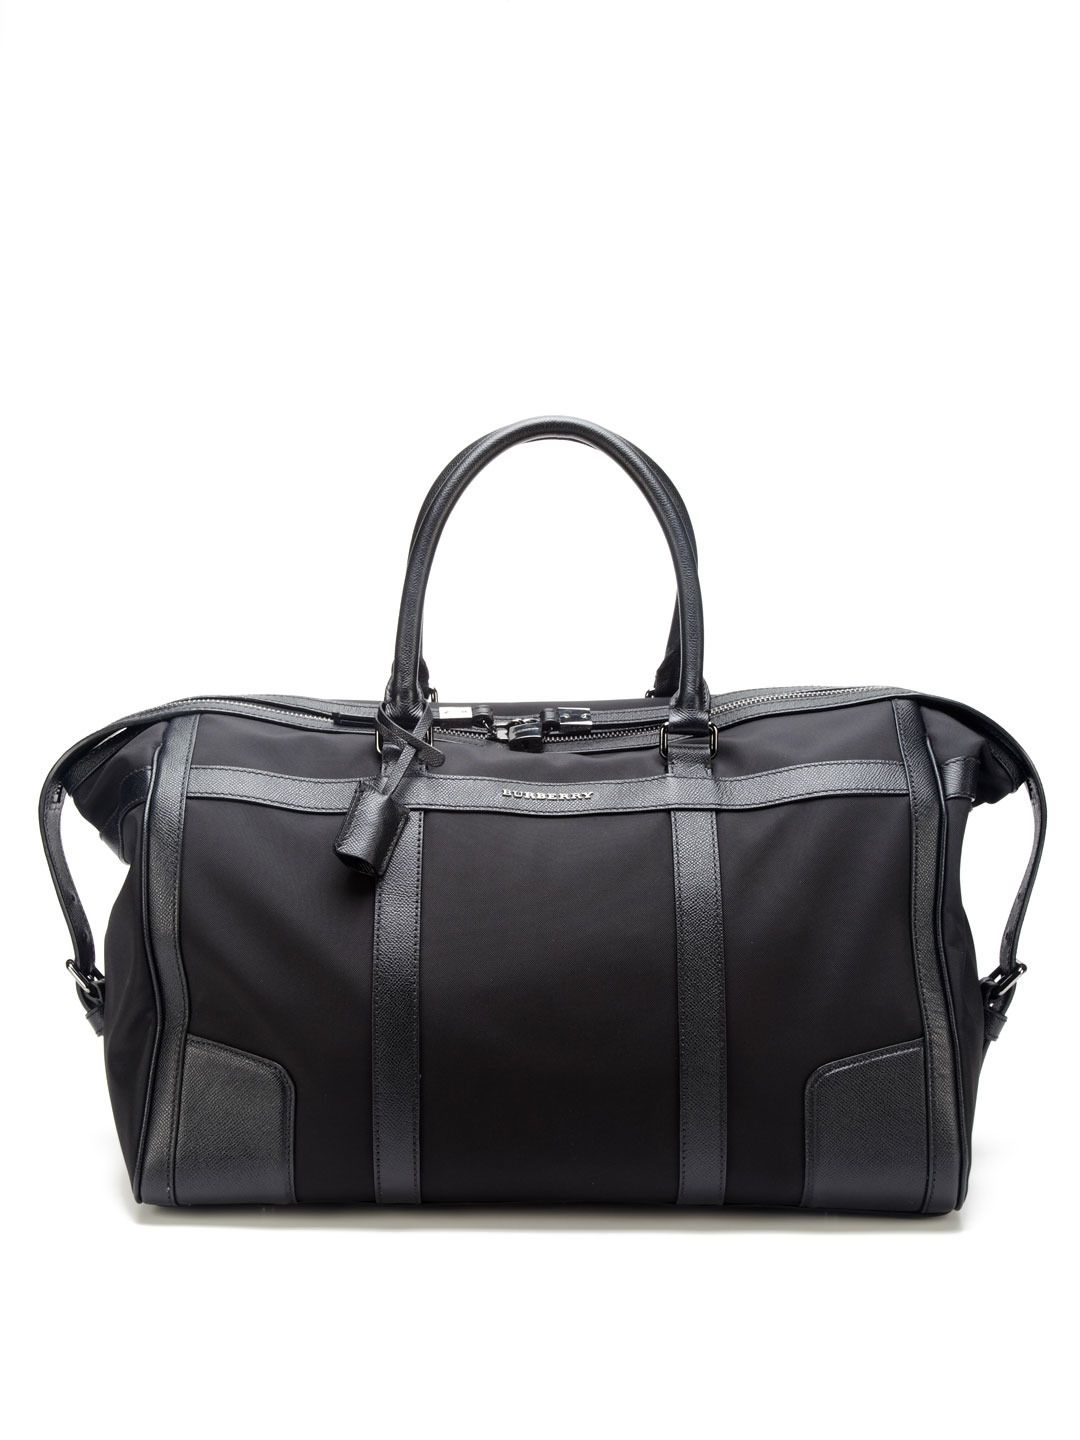 b24daced5 Burberry travel bag $837   Shopping: Find it   Handbags for men ...